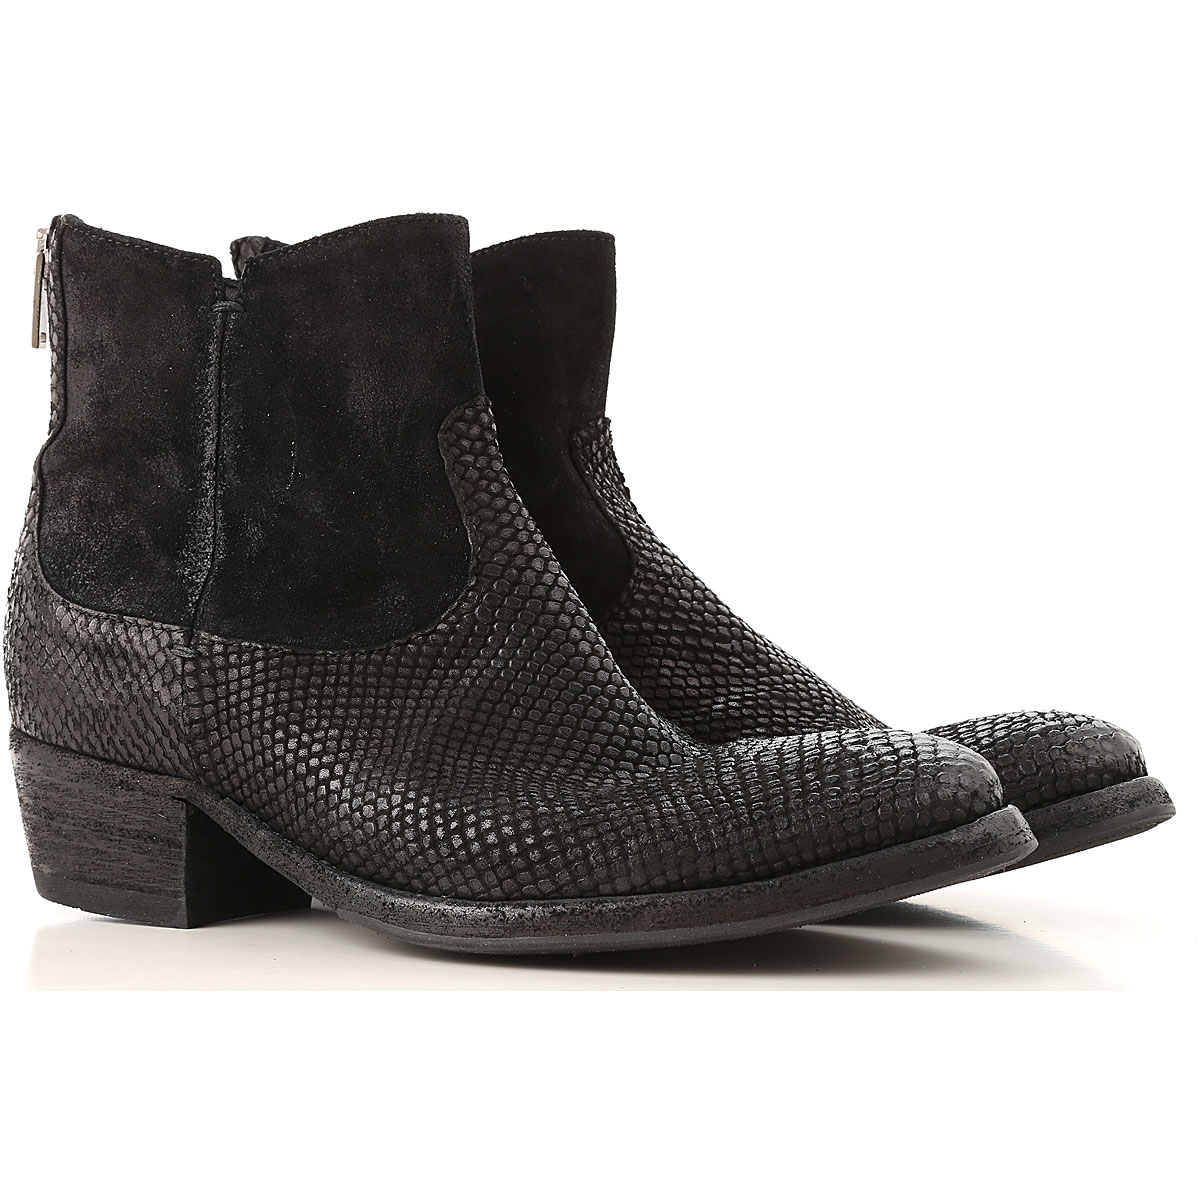 Image of Pantanetti Boots for Women, Booties, Black, Suede leather, 2017, 10 6 7 9